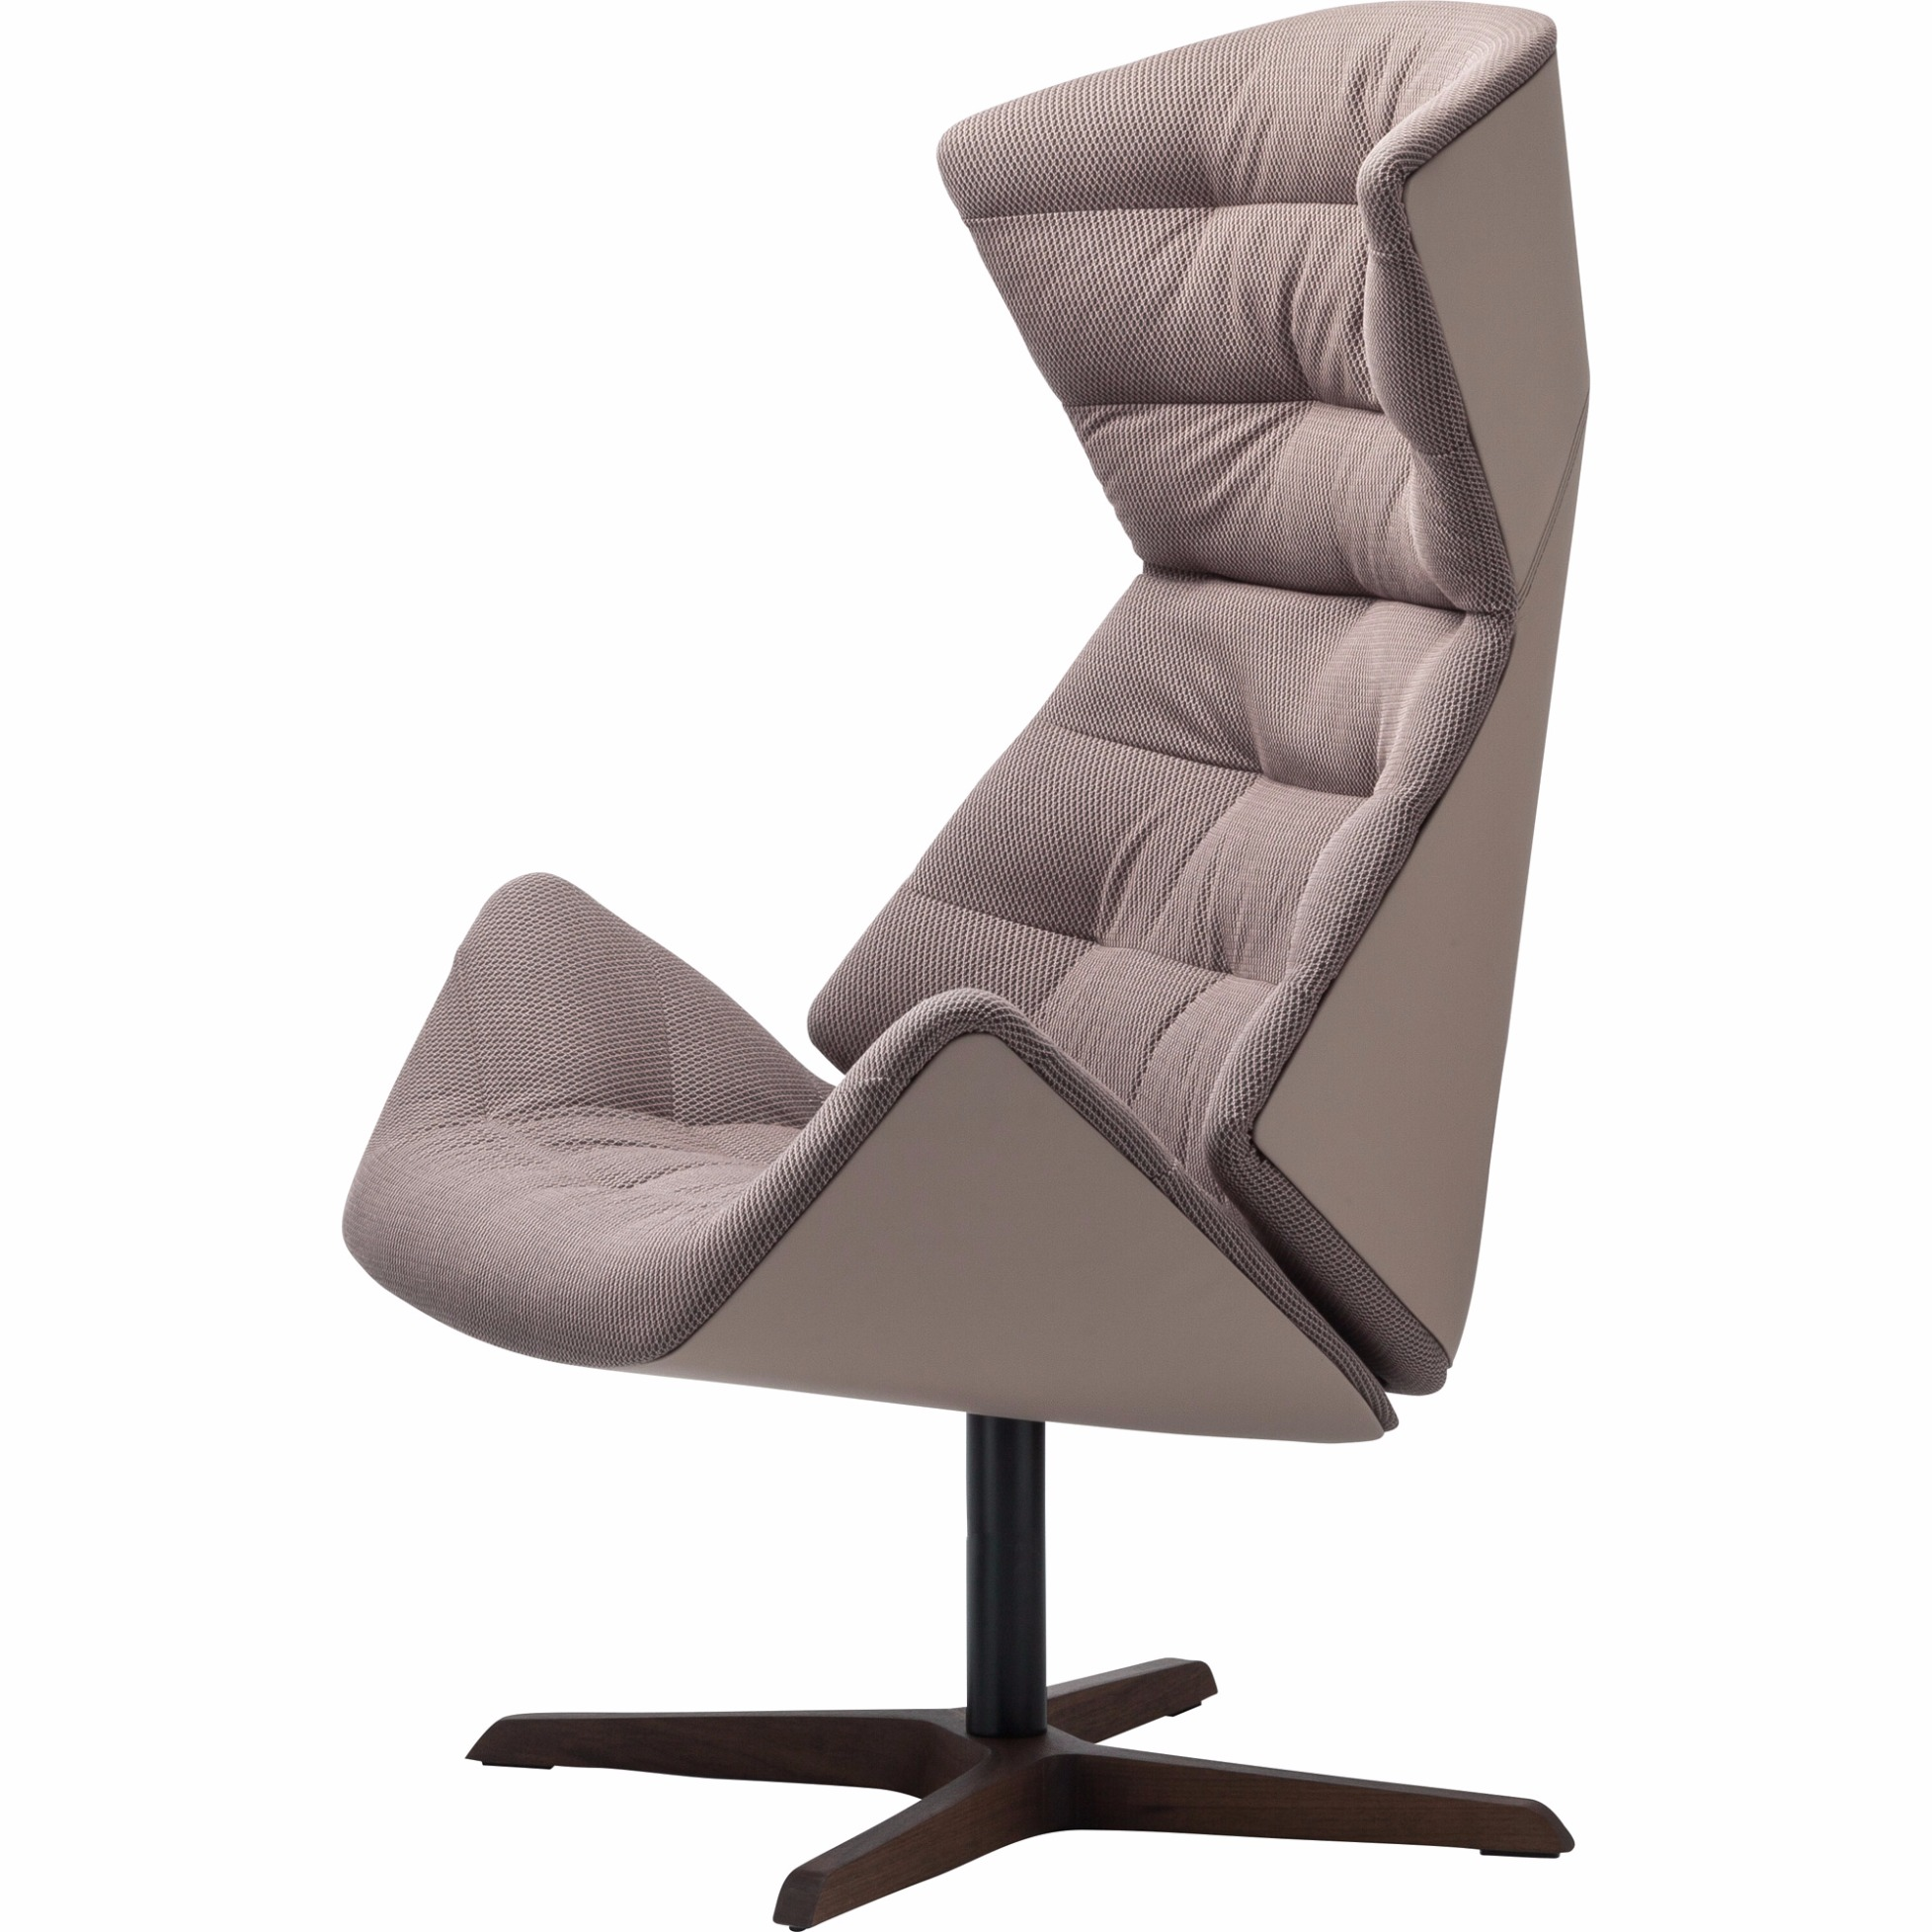 Lounge sessel indoor  Loungesessel 808 von Thonet